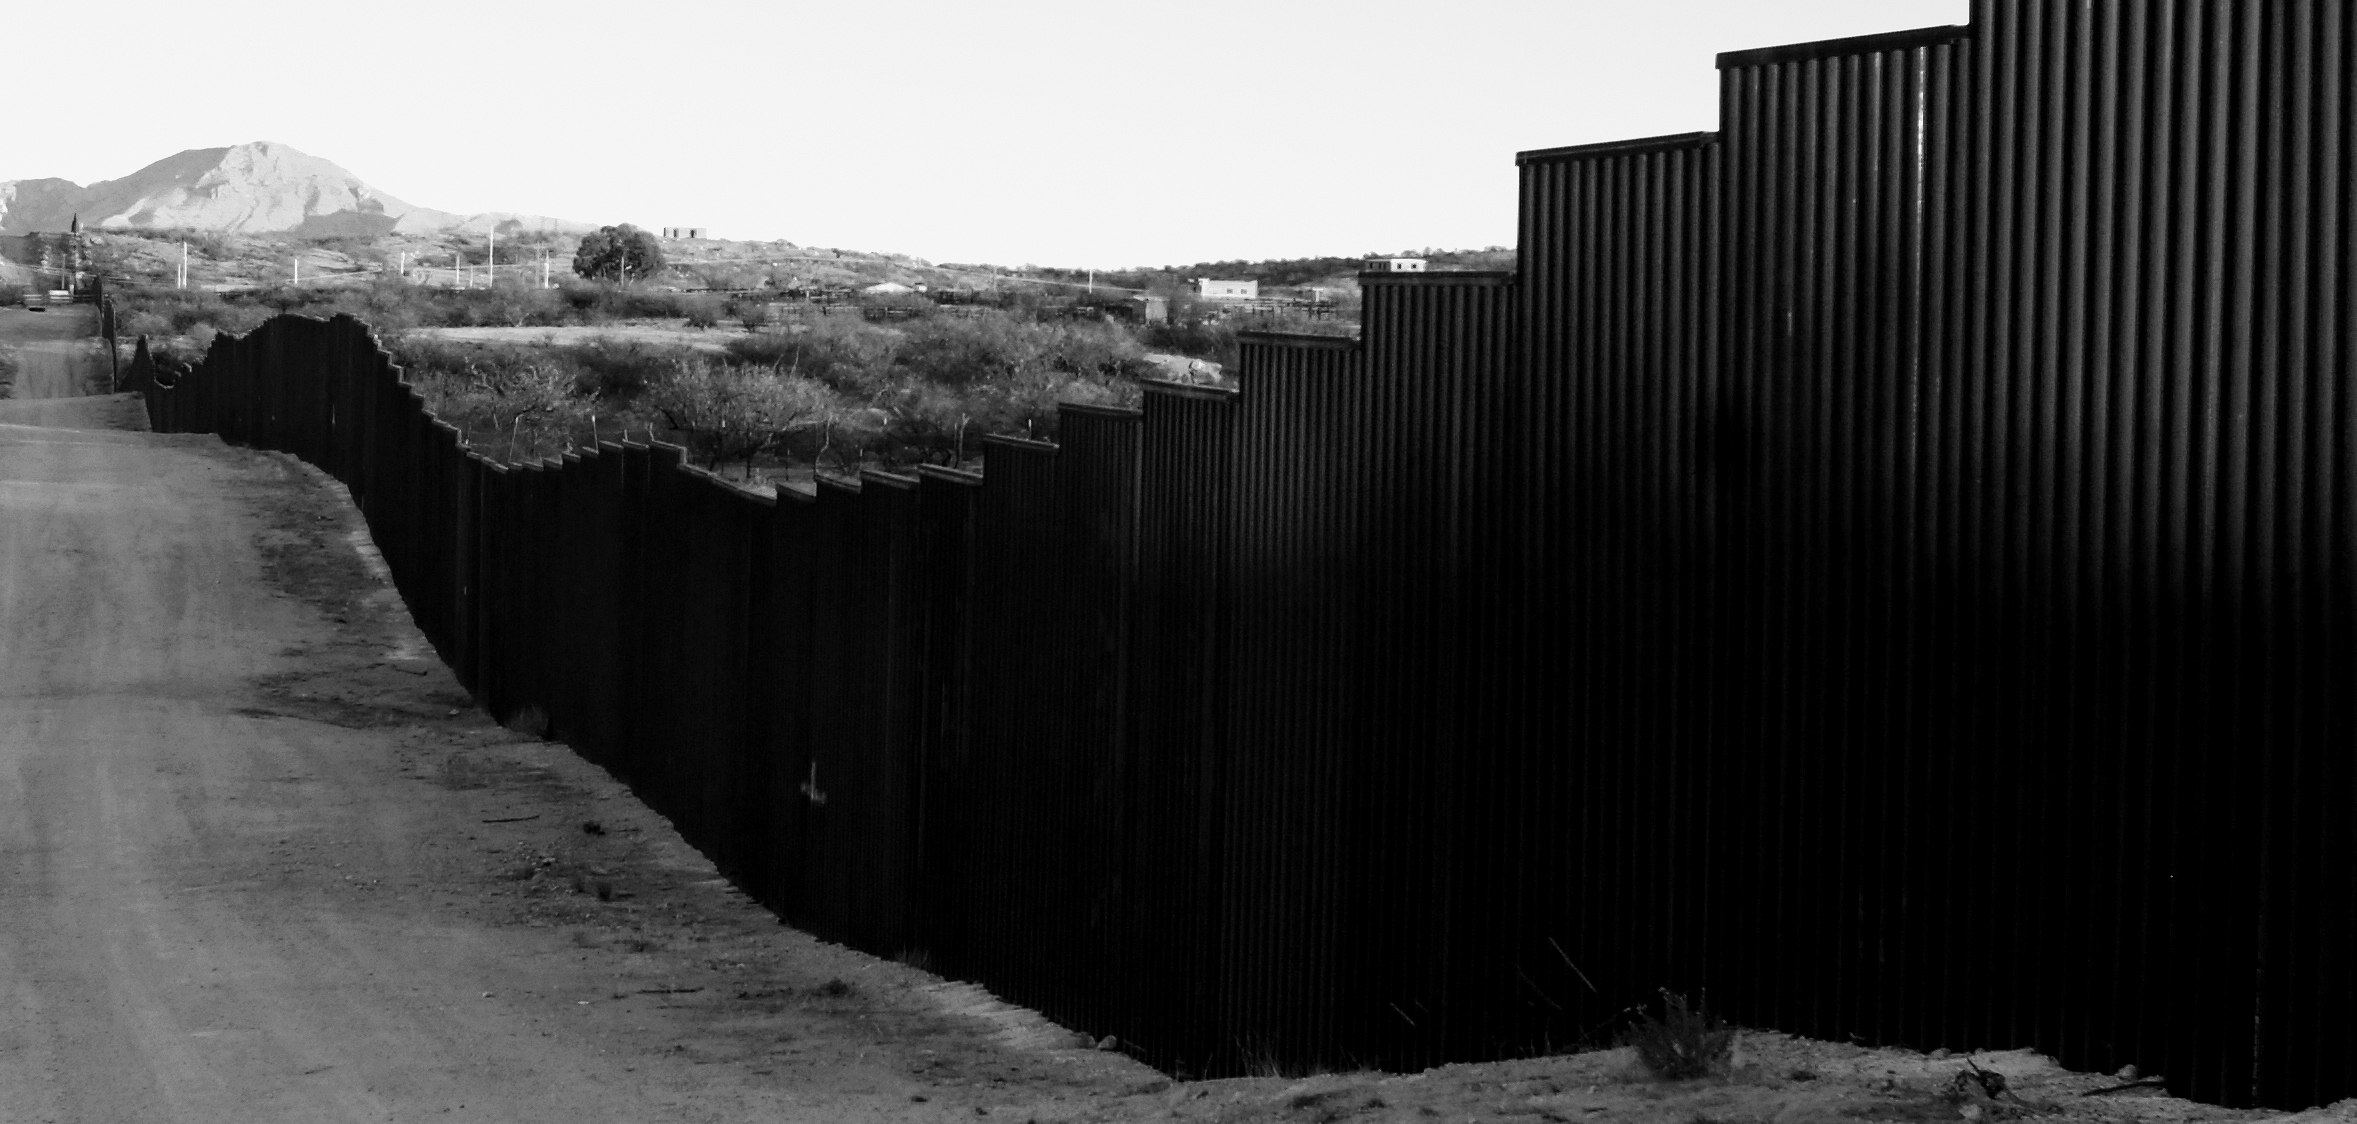 The US-Mexico border fence